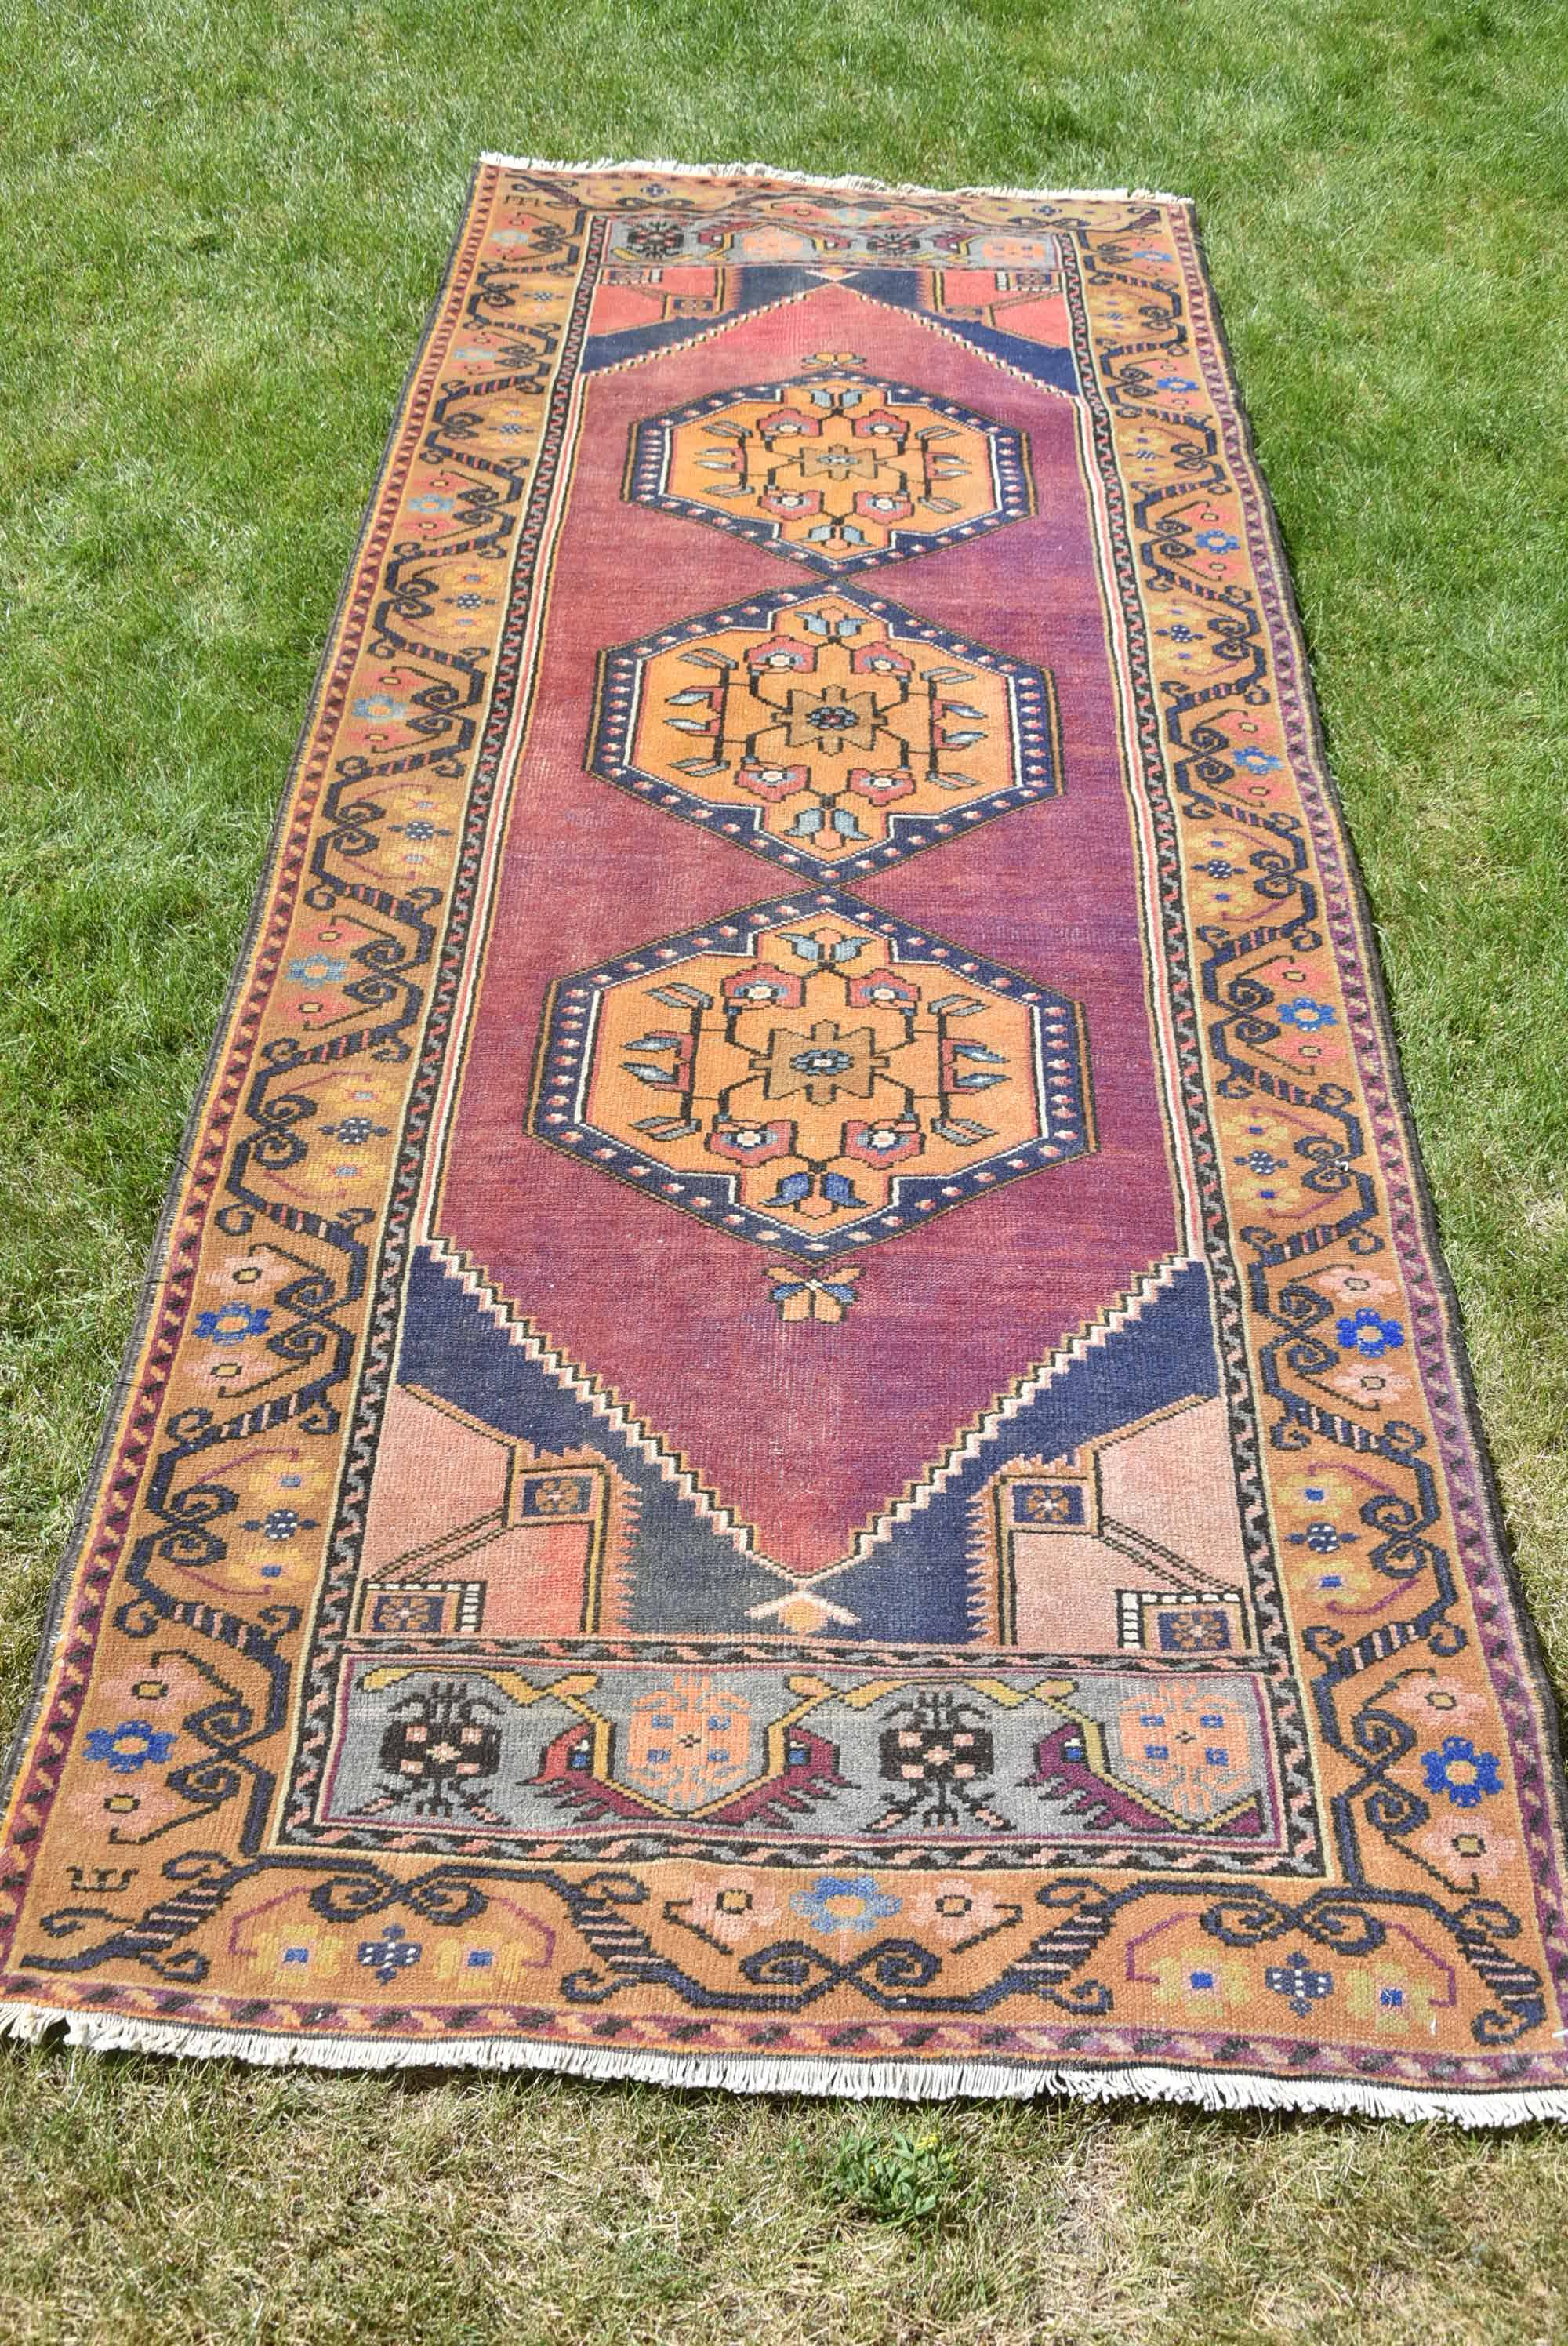 Turkish Runner Rugvintage Rug 3x10 Ft Runneroushak Runner Vintage Runner Rugs Rugs Vintage Carpet